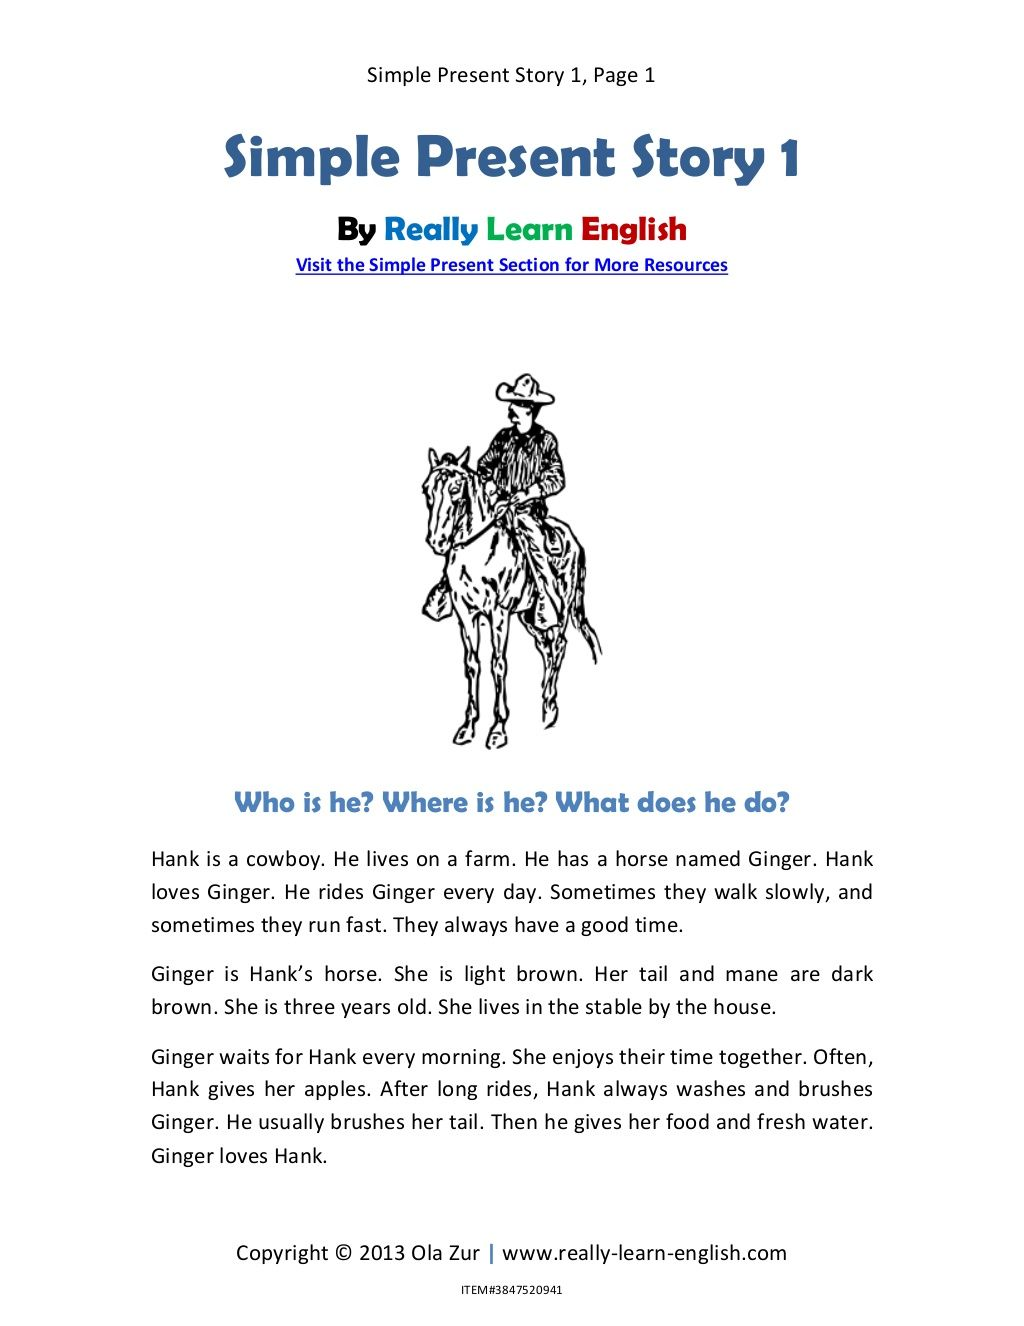 Simple Present Story 1 In